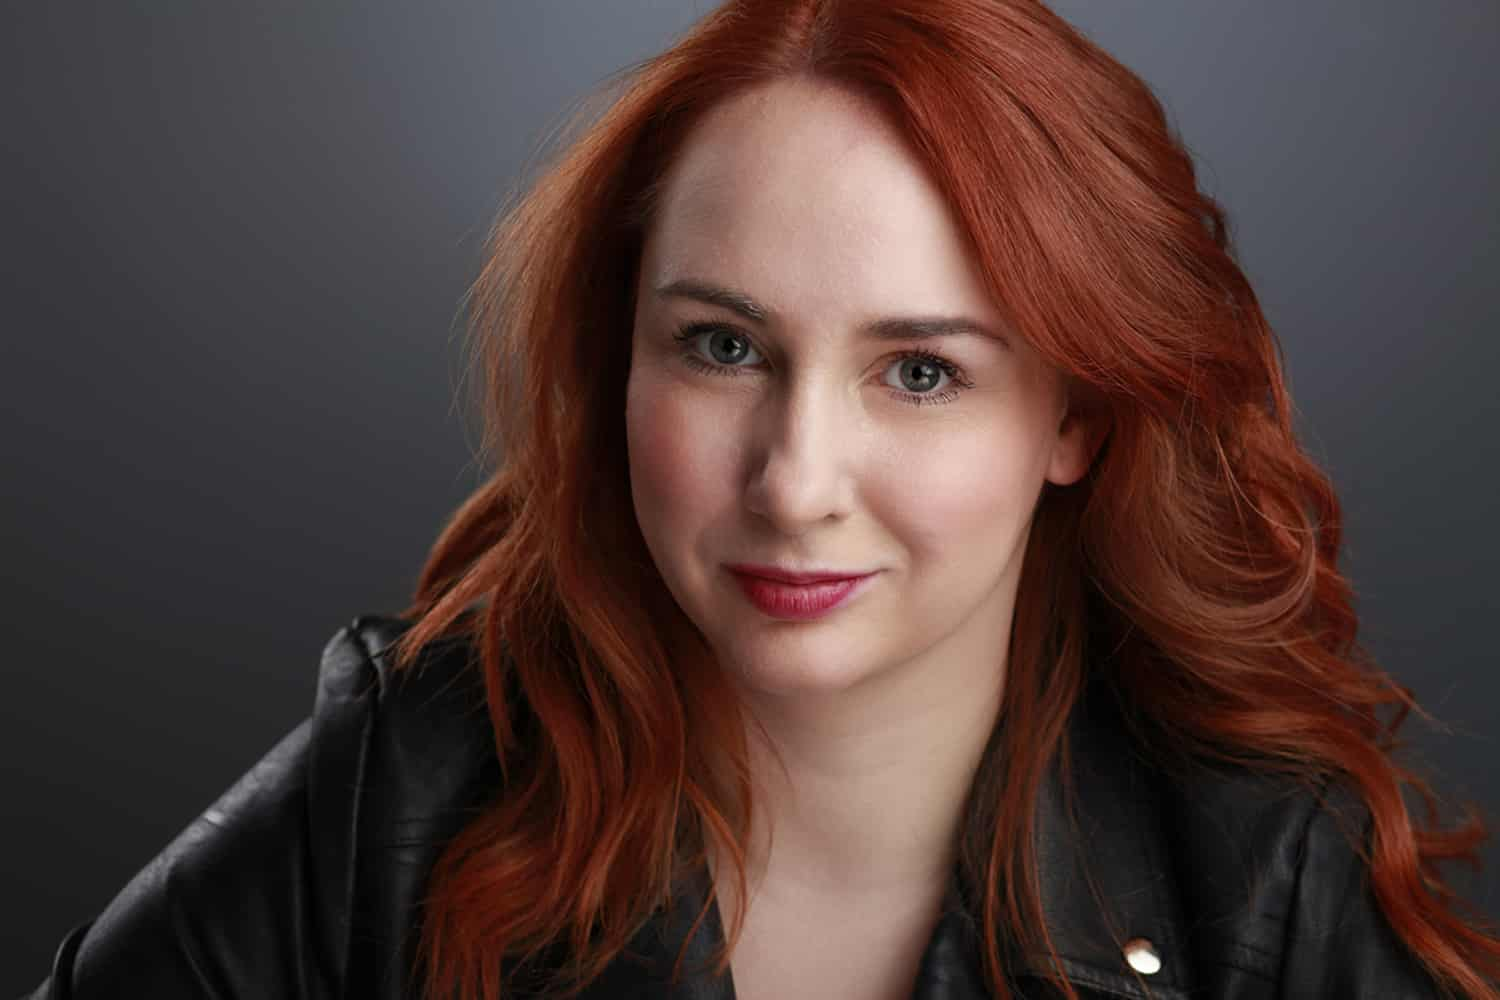 Red-Hair-Girl-Black -jacket-Photo-studio-grey-backdrop